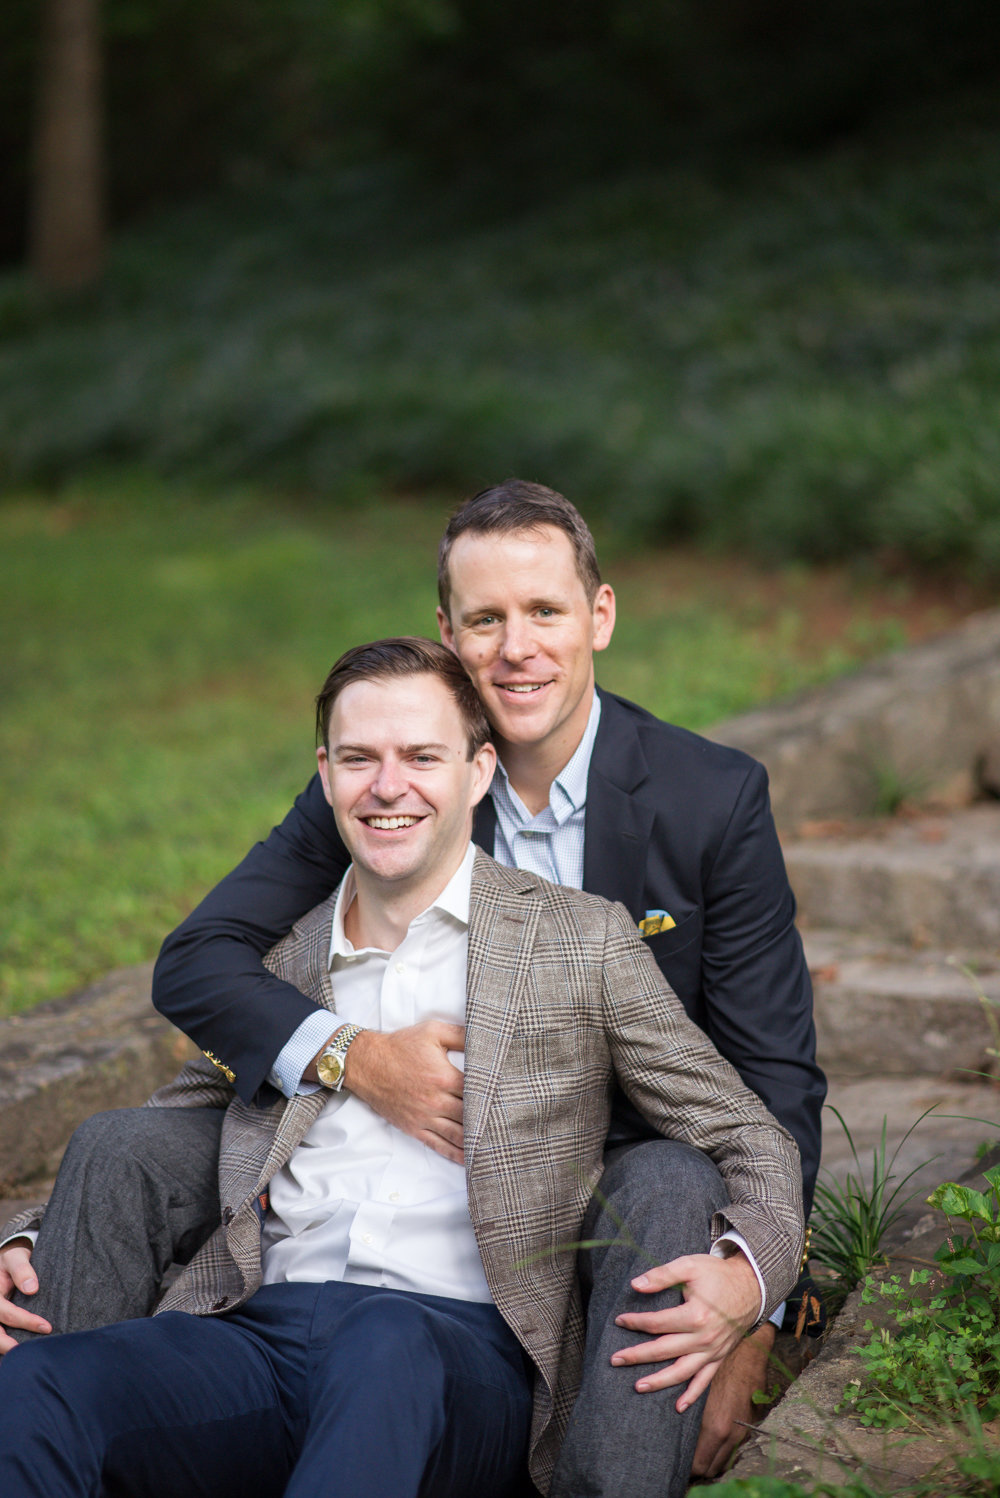 Gay Engagement Session Atlanta Georgia Wedding Photographer-27